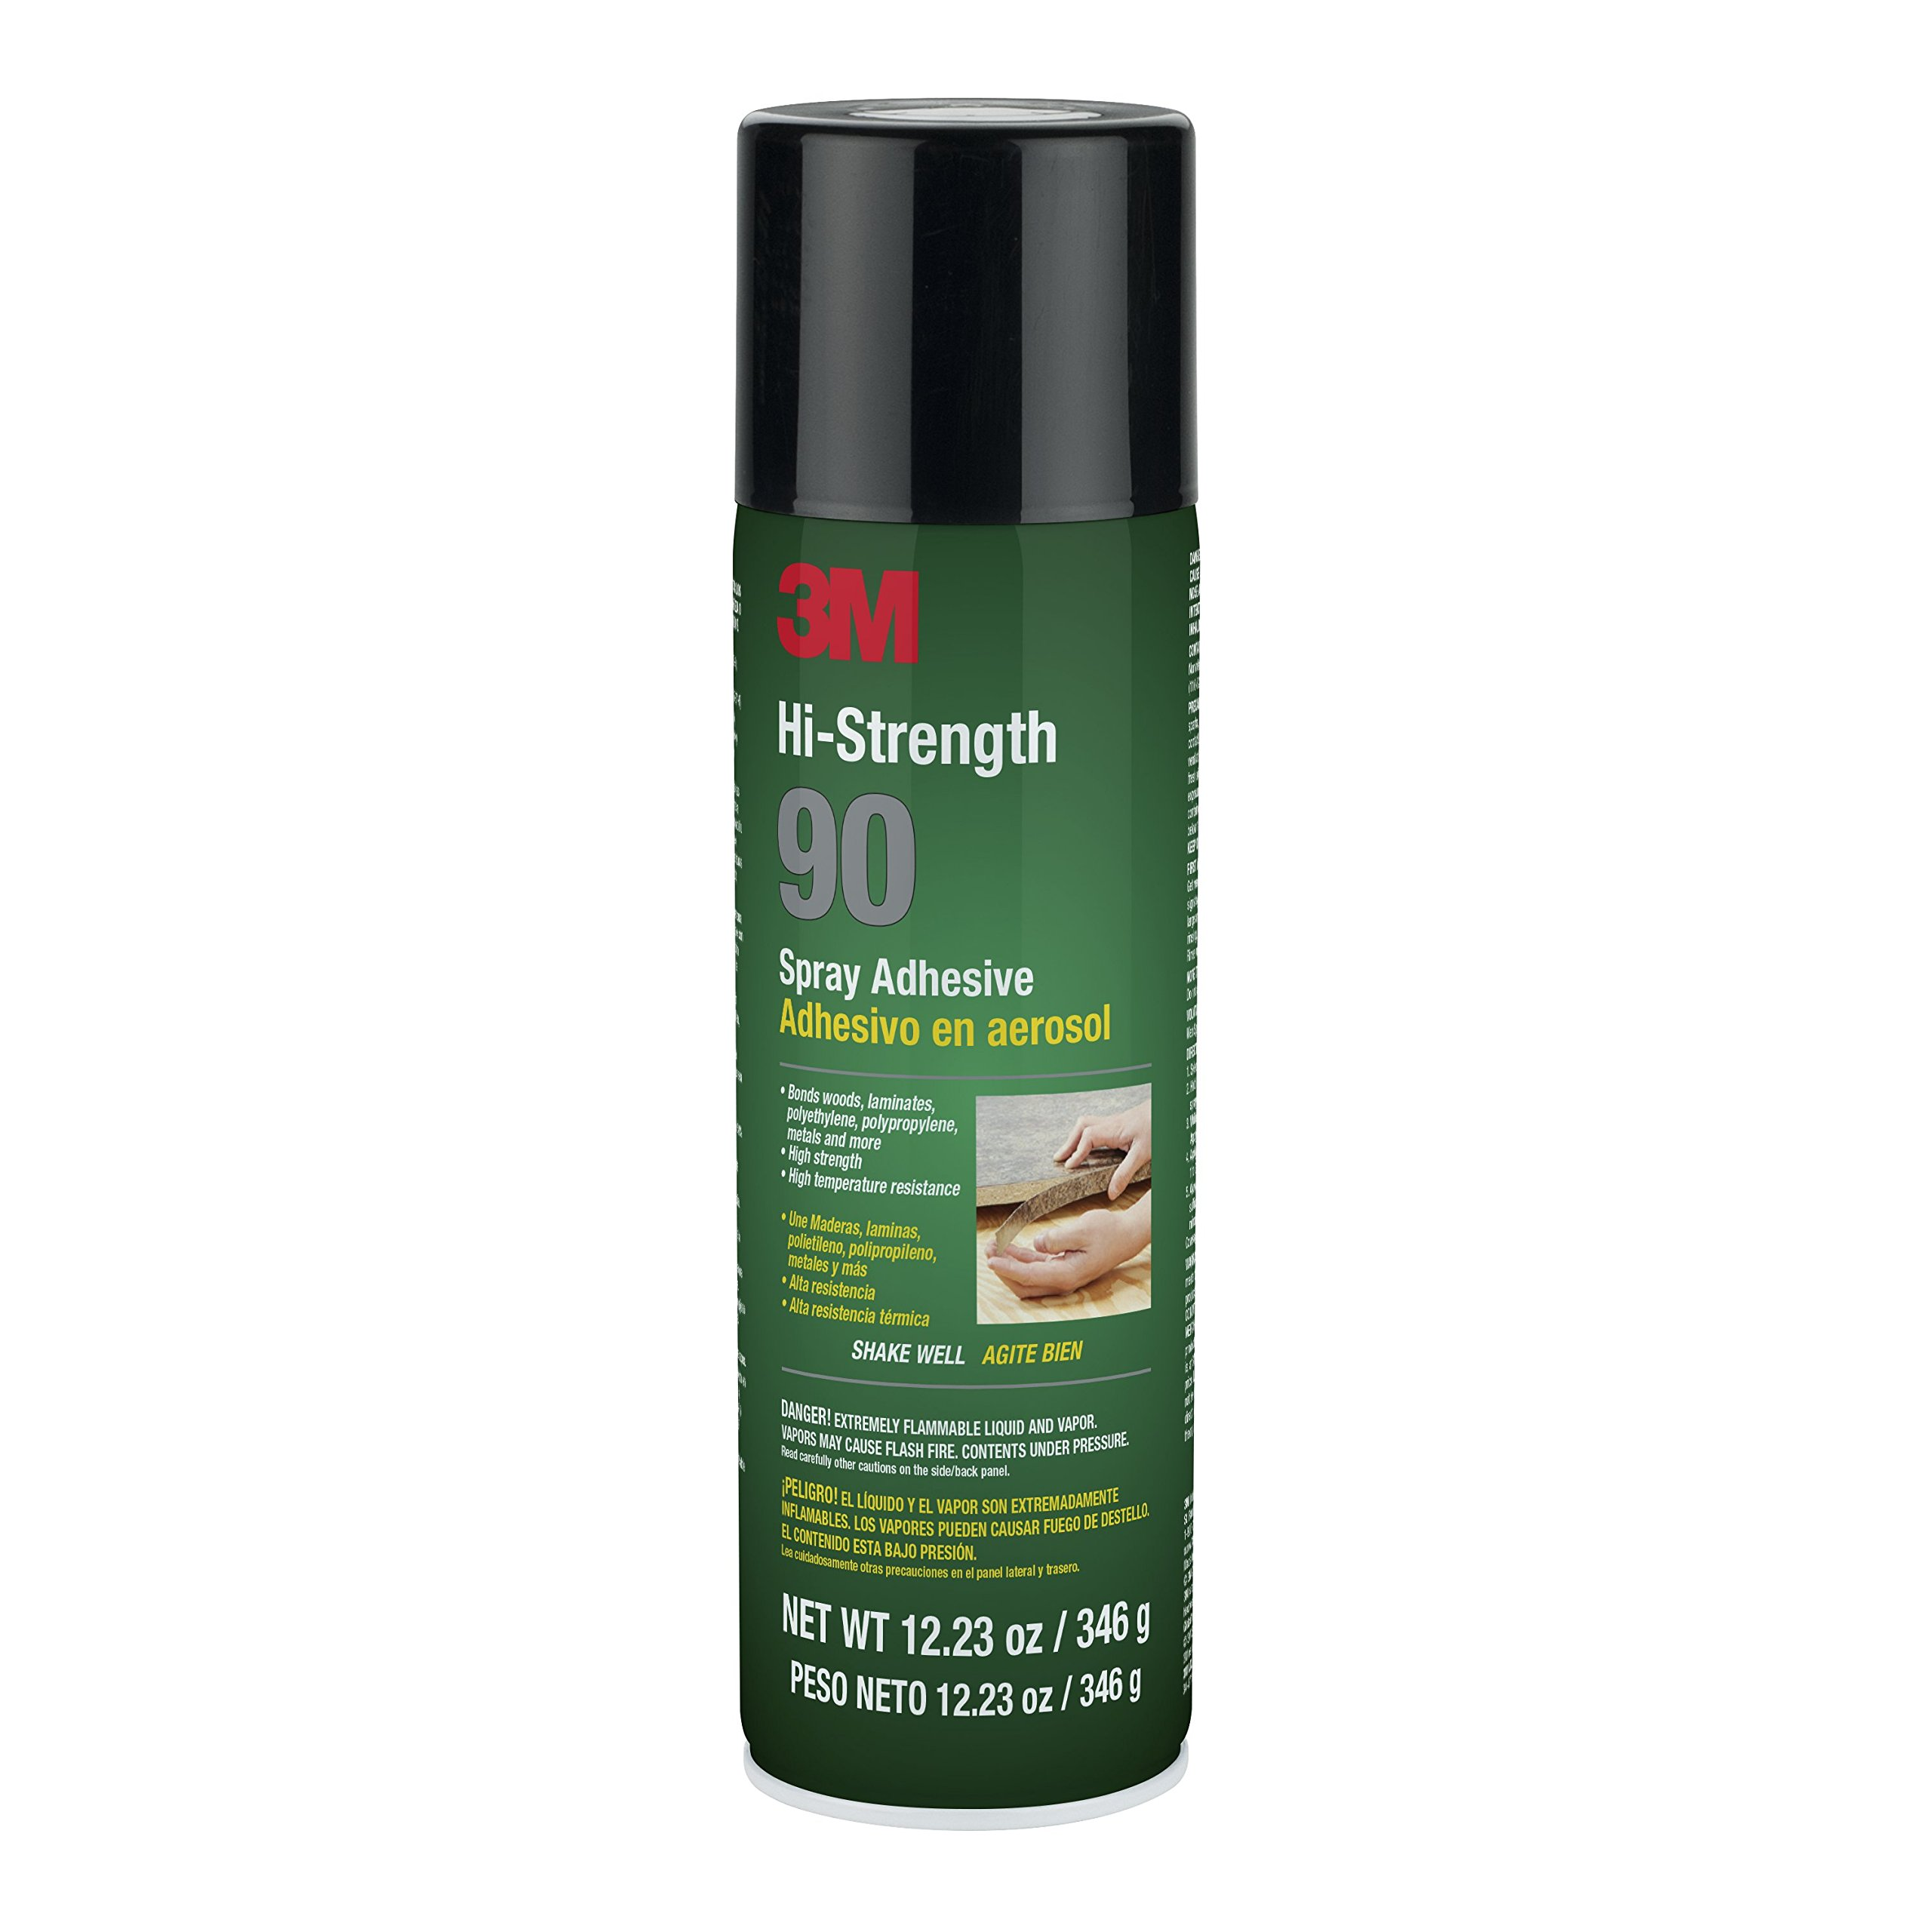 3M Hi-Strength 90 Spray Adhesive Clear, Net Wt 12.23 oz